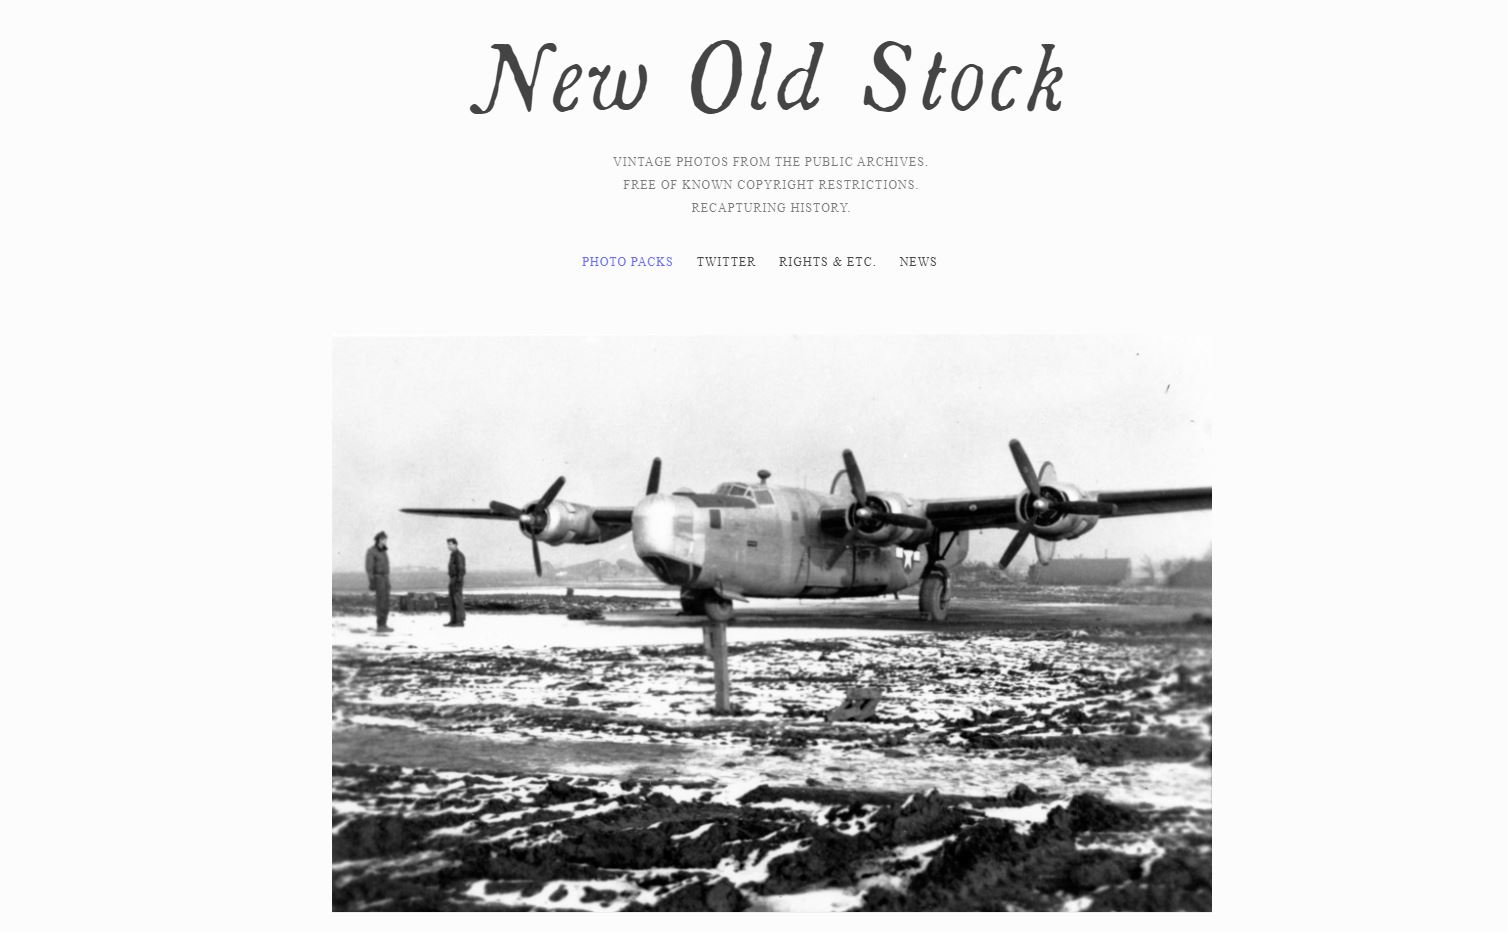 News Old Stock